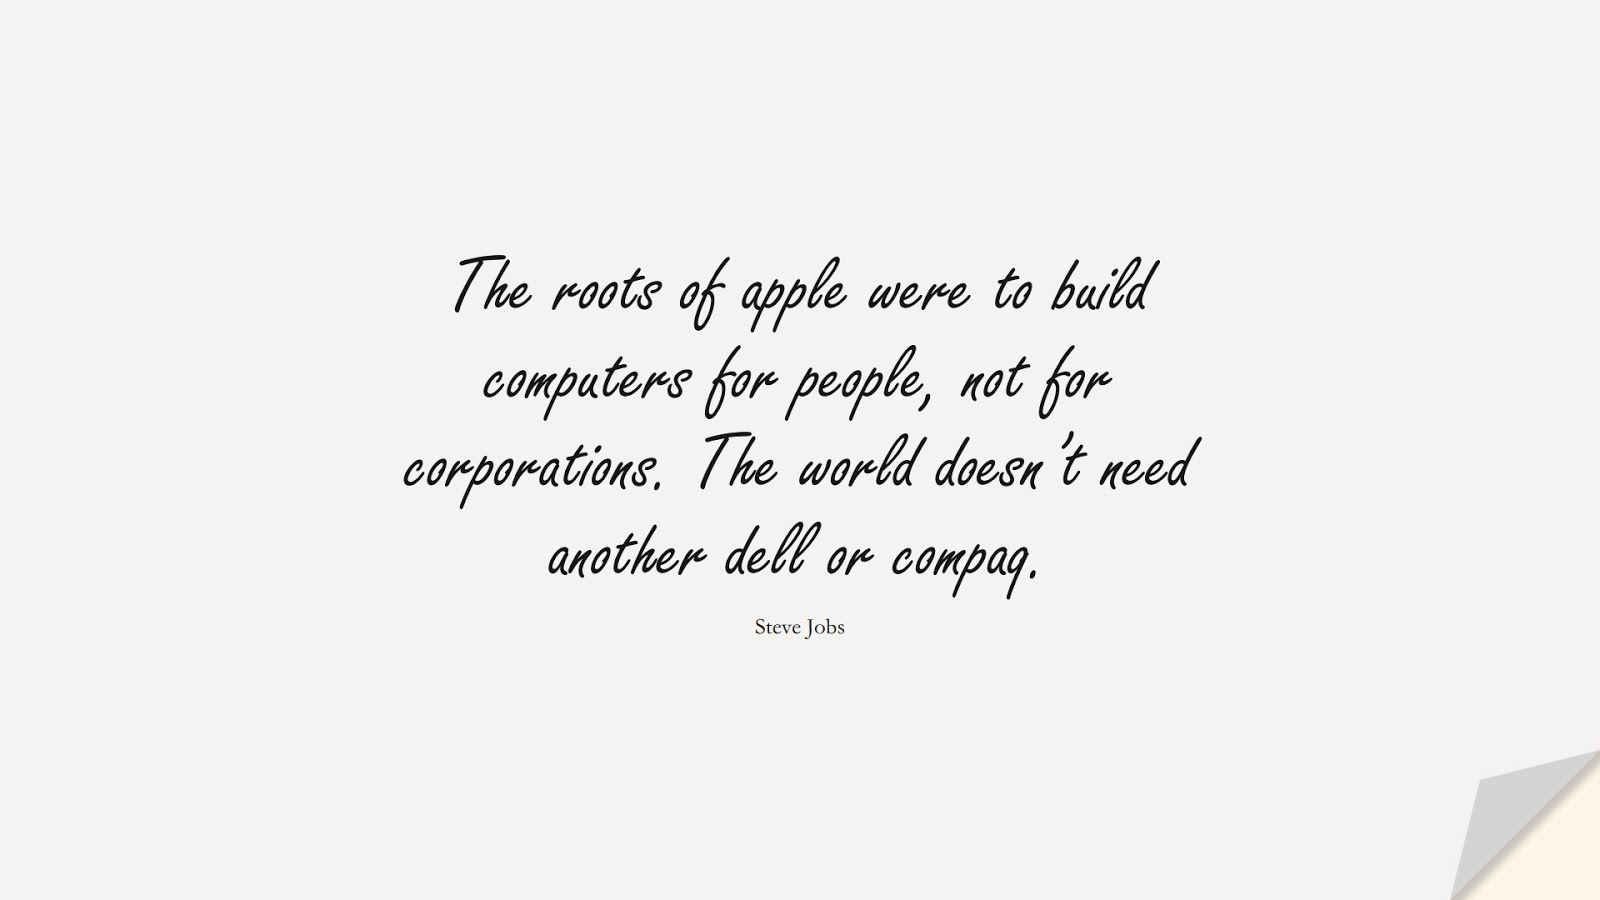 The roots of apple were to build computers for people, not for corporations. The world doesn't need another dell or compaq. (Steve Jobs);  #SteveJobsQuotes